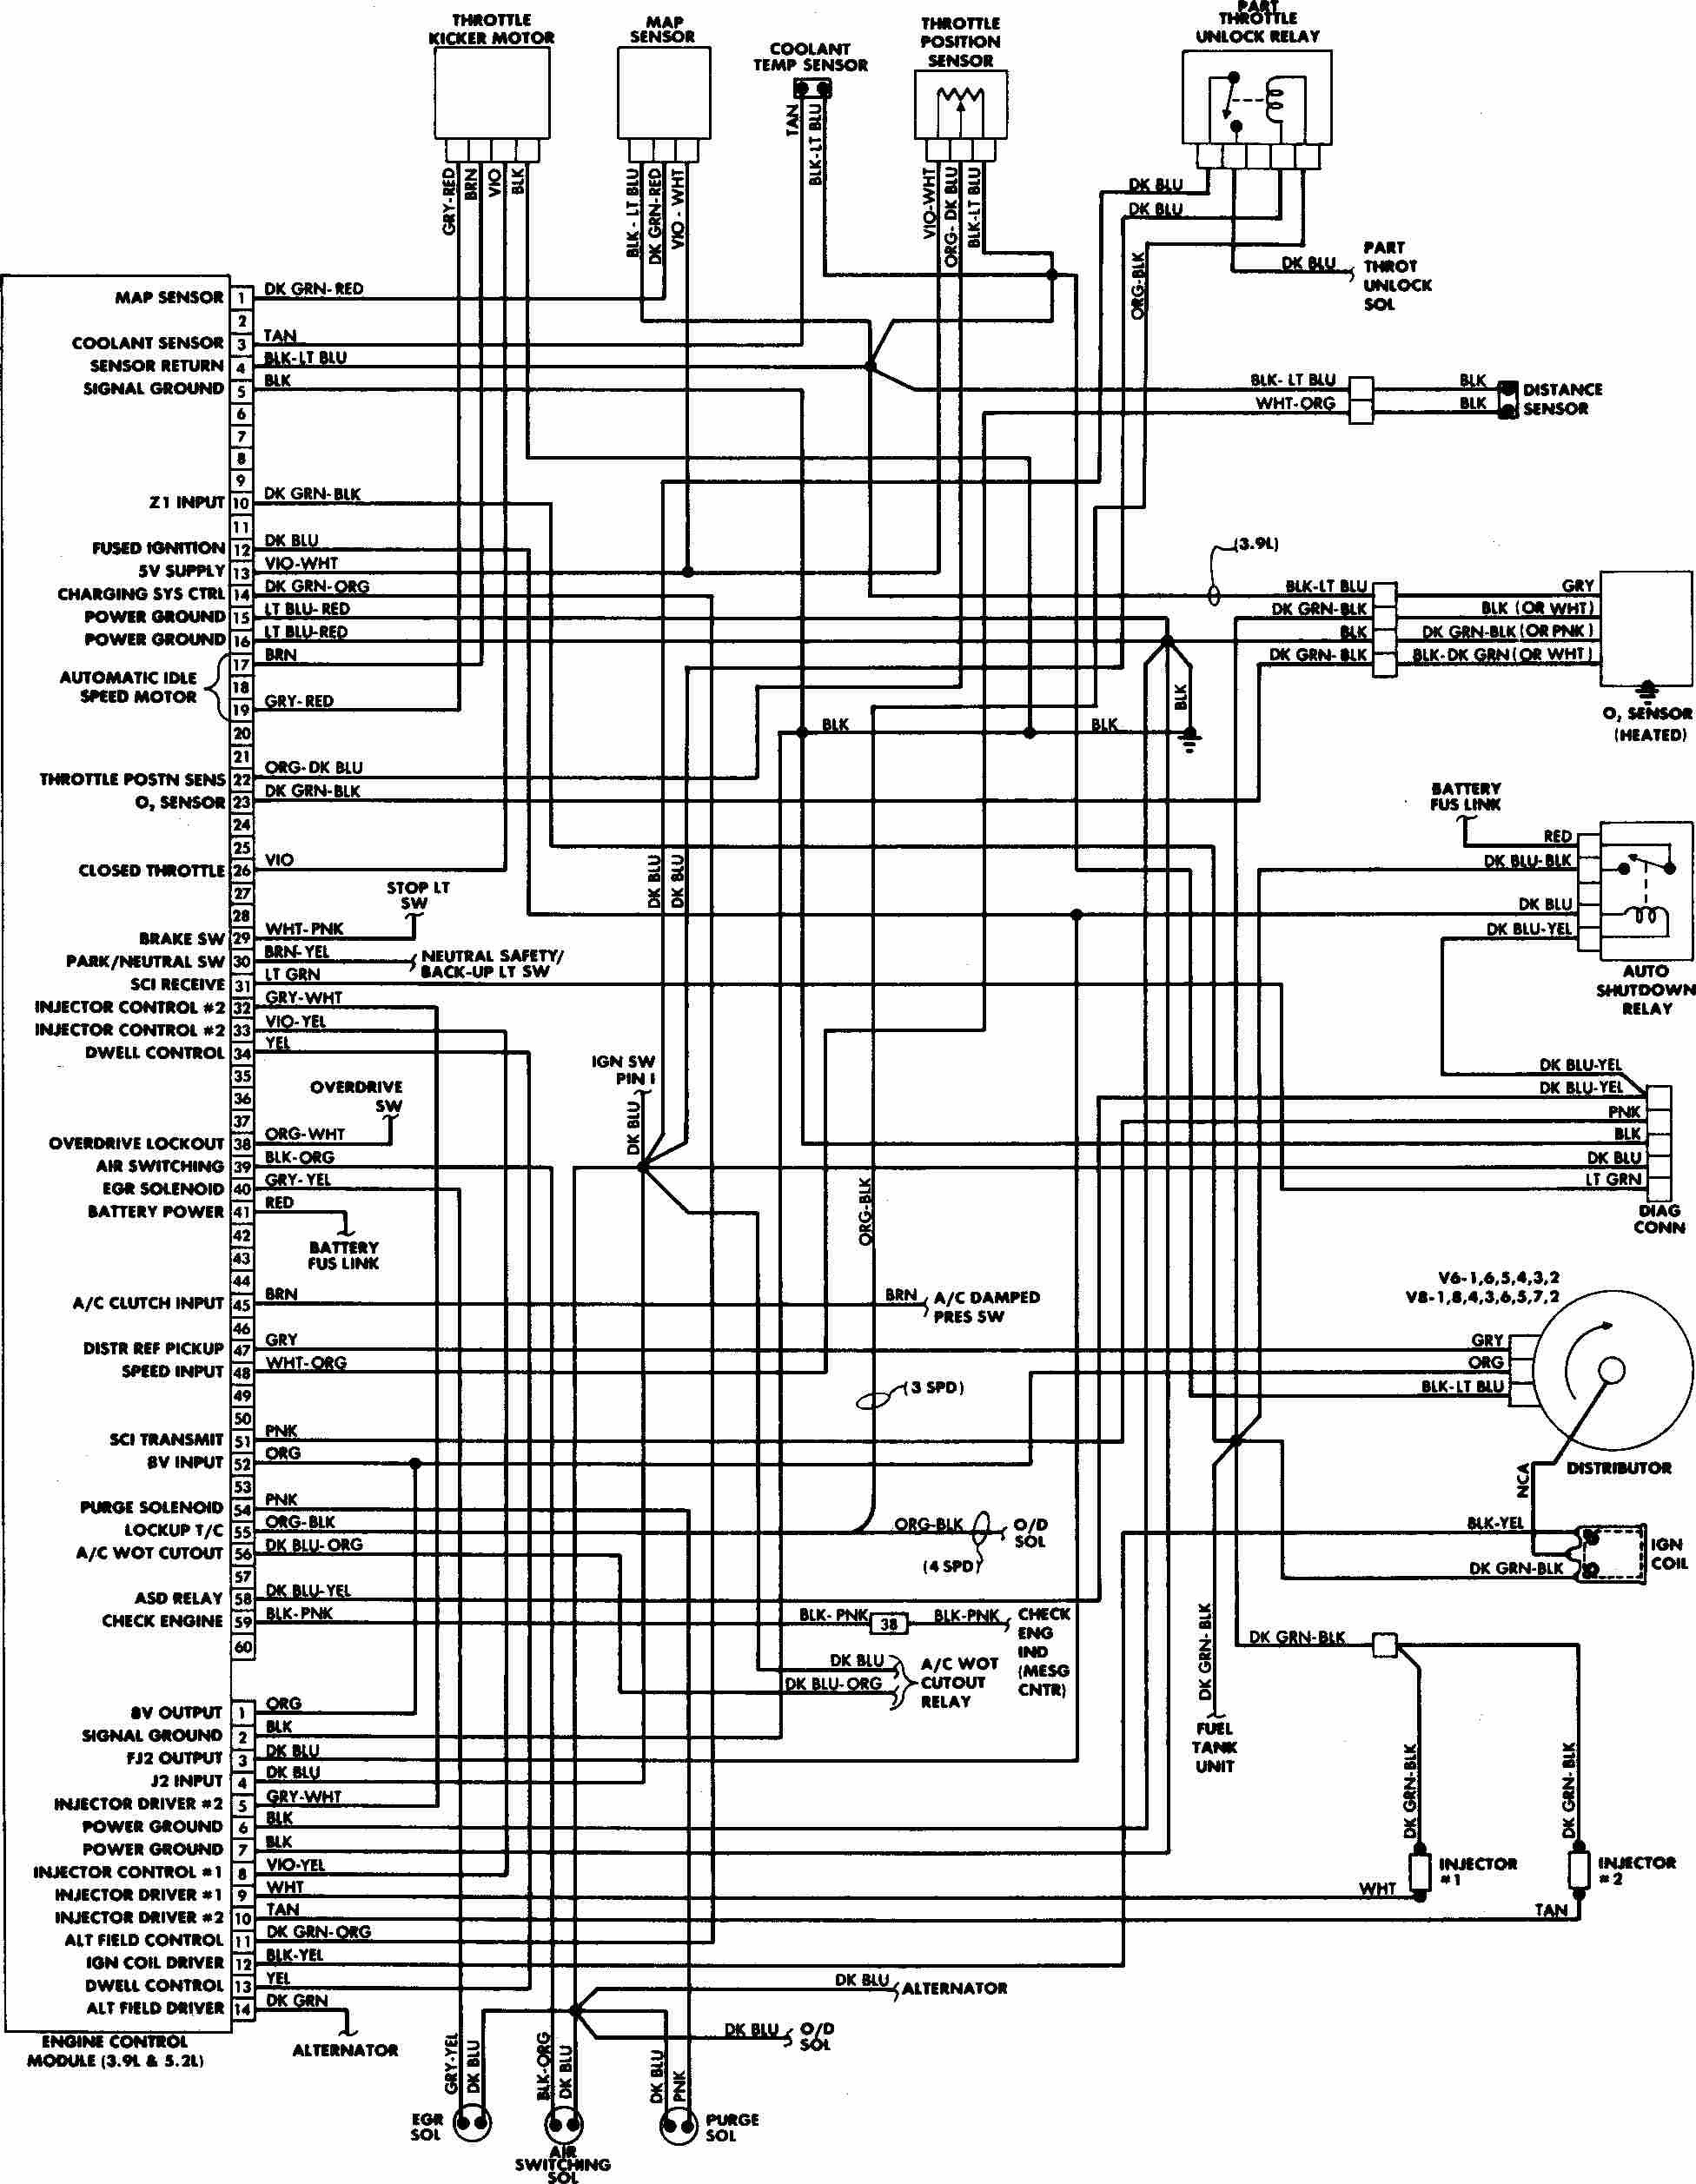 2014 dodge ram 2500 wiring diagram 2014 dodge ram 2500 fuse diagram